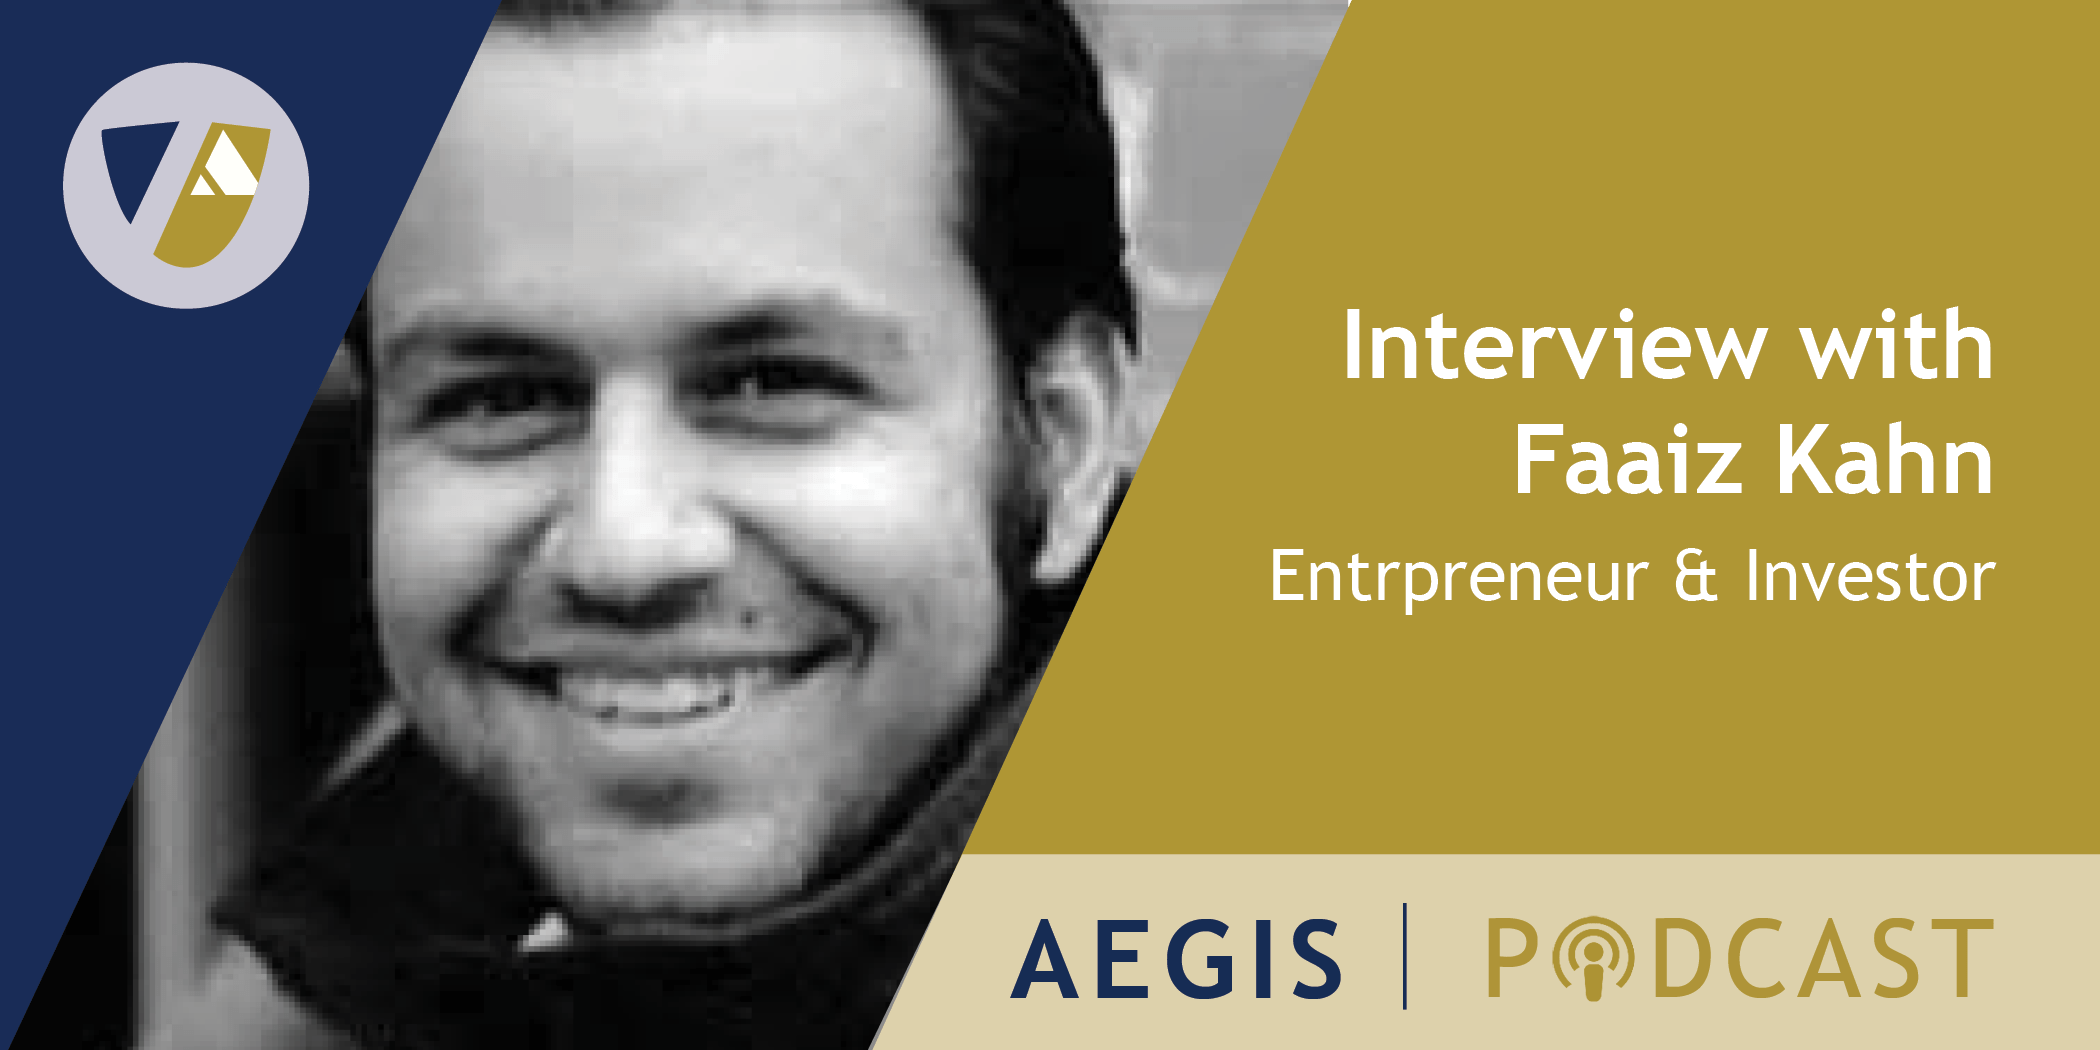 The AEGIS Podcast: Interview with Faaiz Kahn, Entrepreneur and Investor